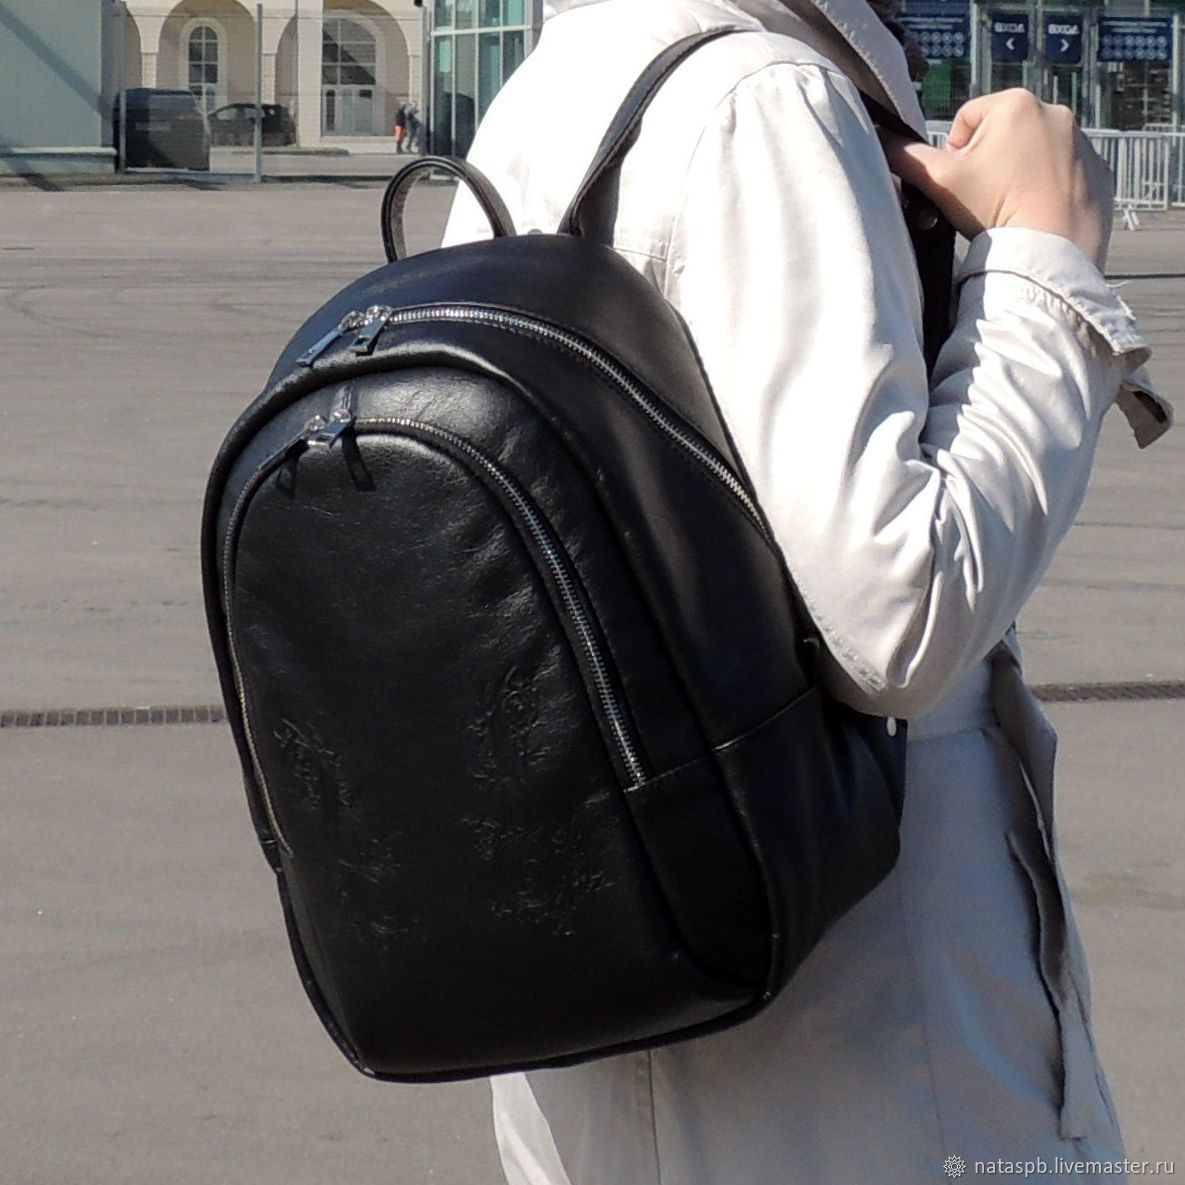 Backpack black leather women's Victoria Fashion R45t-711, Backpacks, St. Petersburg,  Фото №1